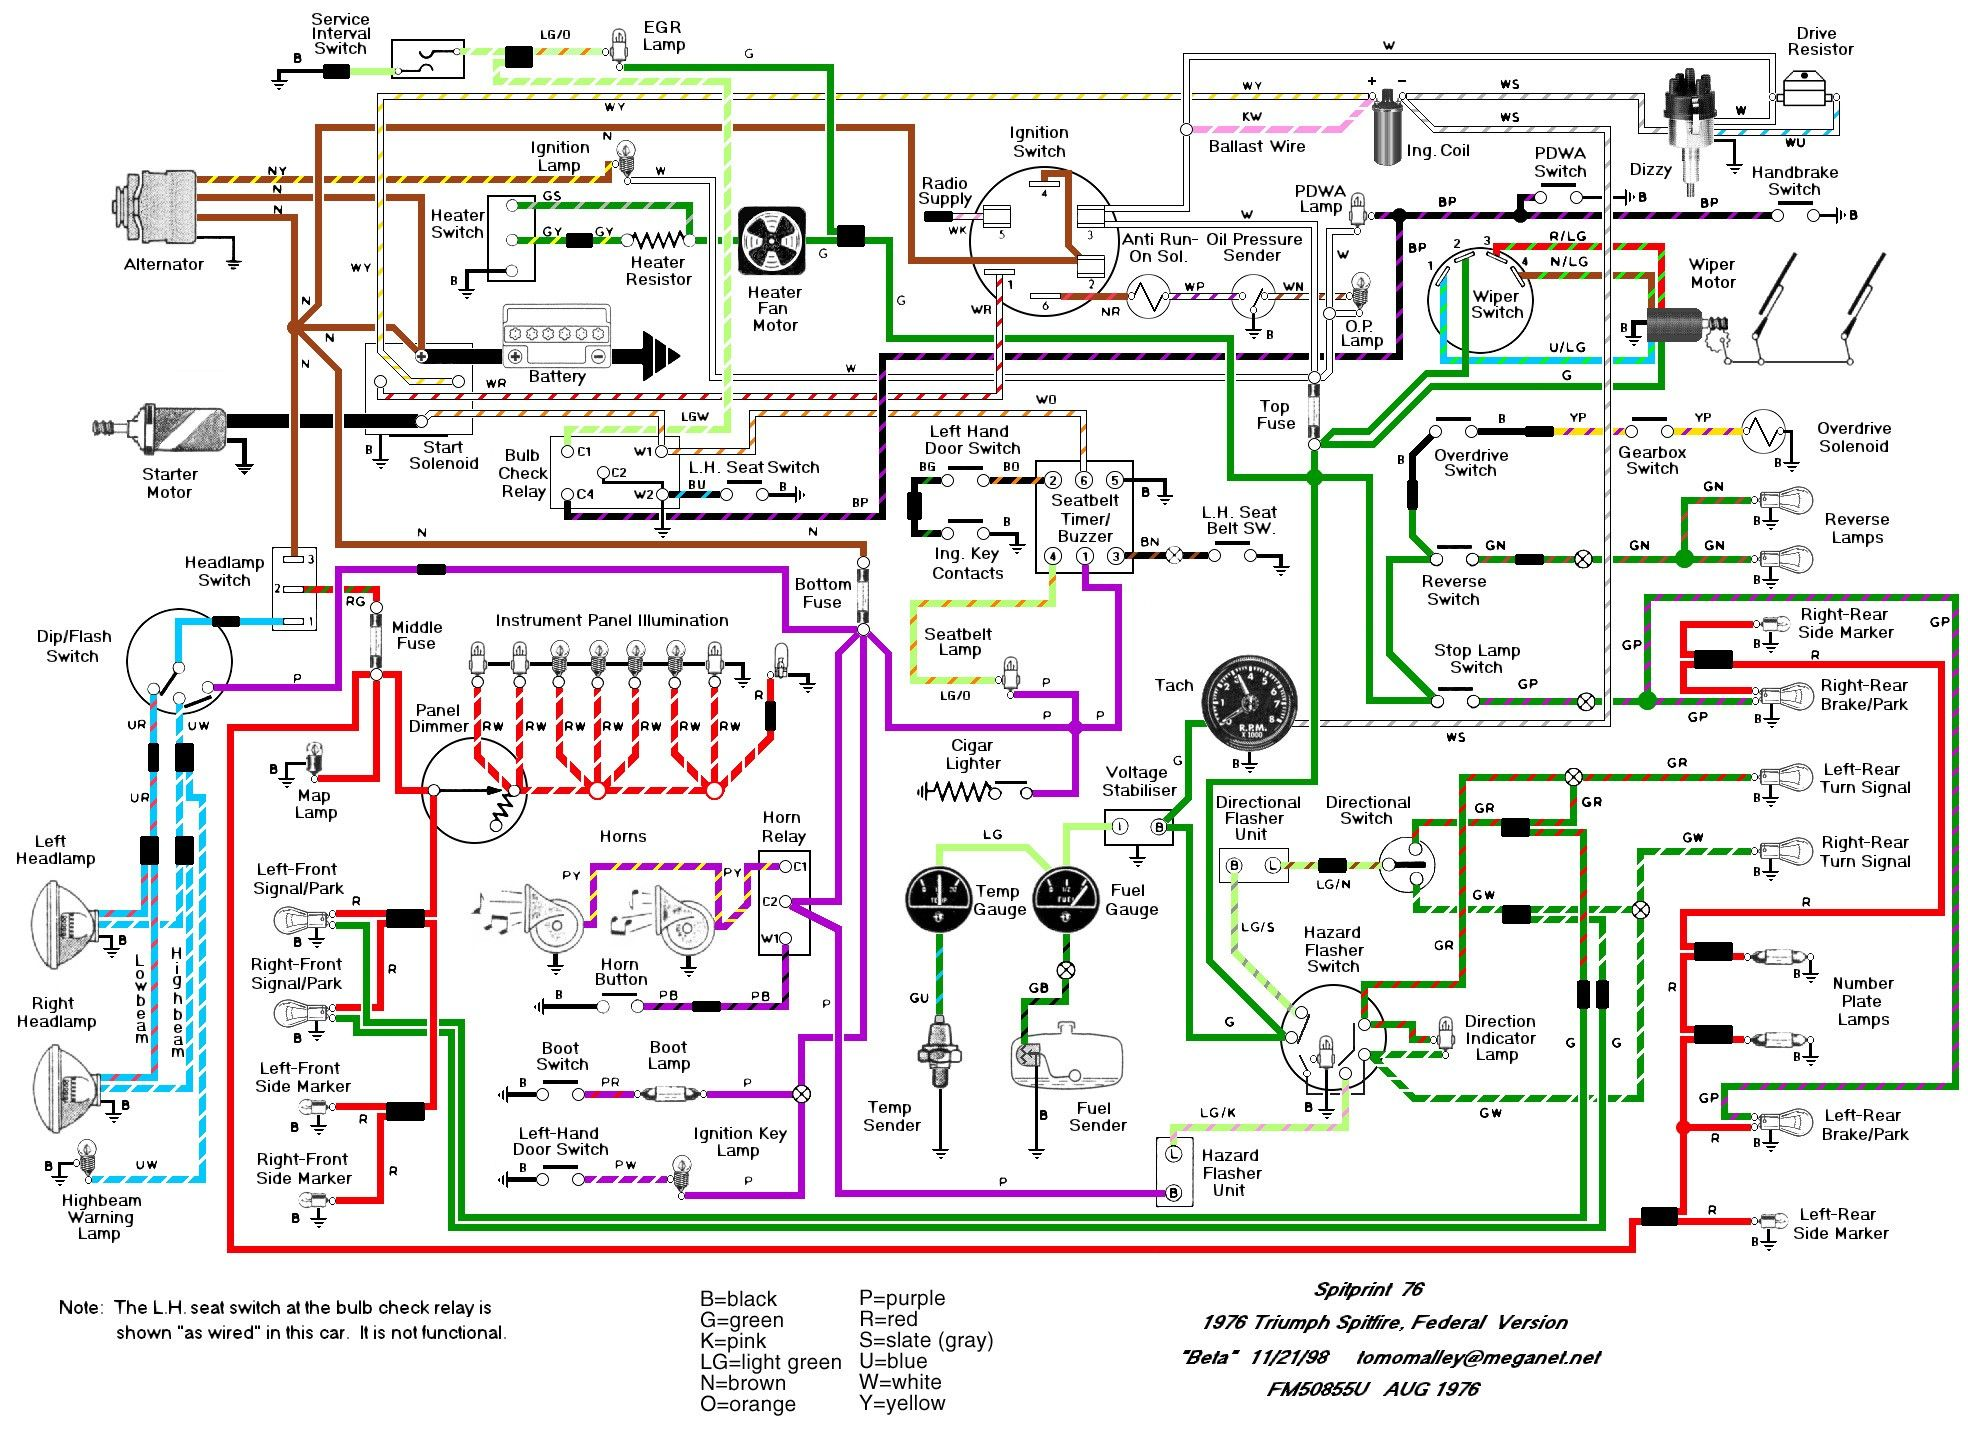 39 Clever Schematic Diagram Program Design Ideas Https Bacamajalah Com 39 Clever Schematic Electrical Circuit Diagram Electrical Diagram Electrical Wiring